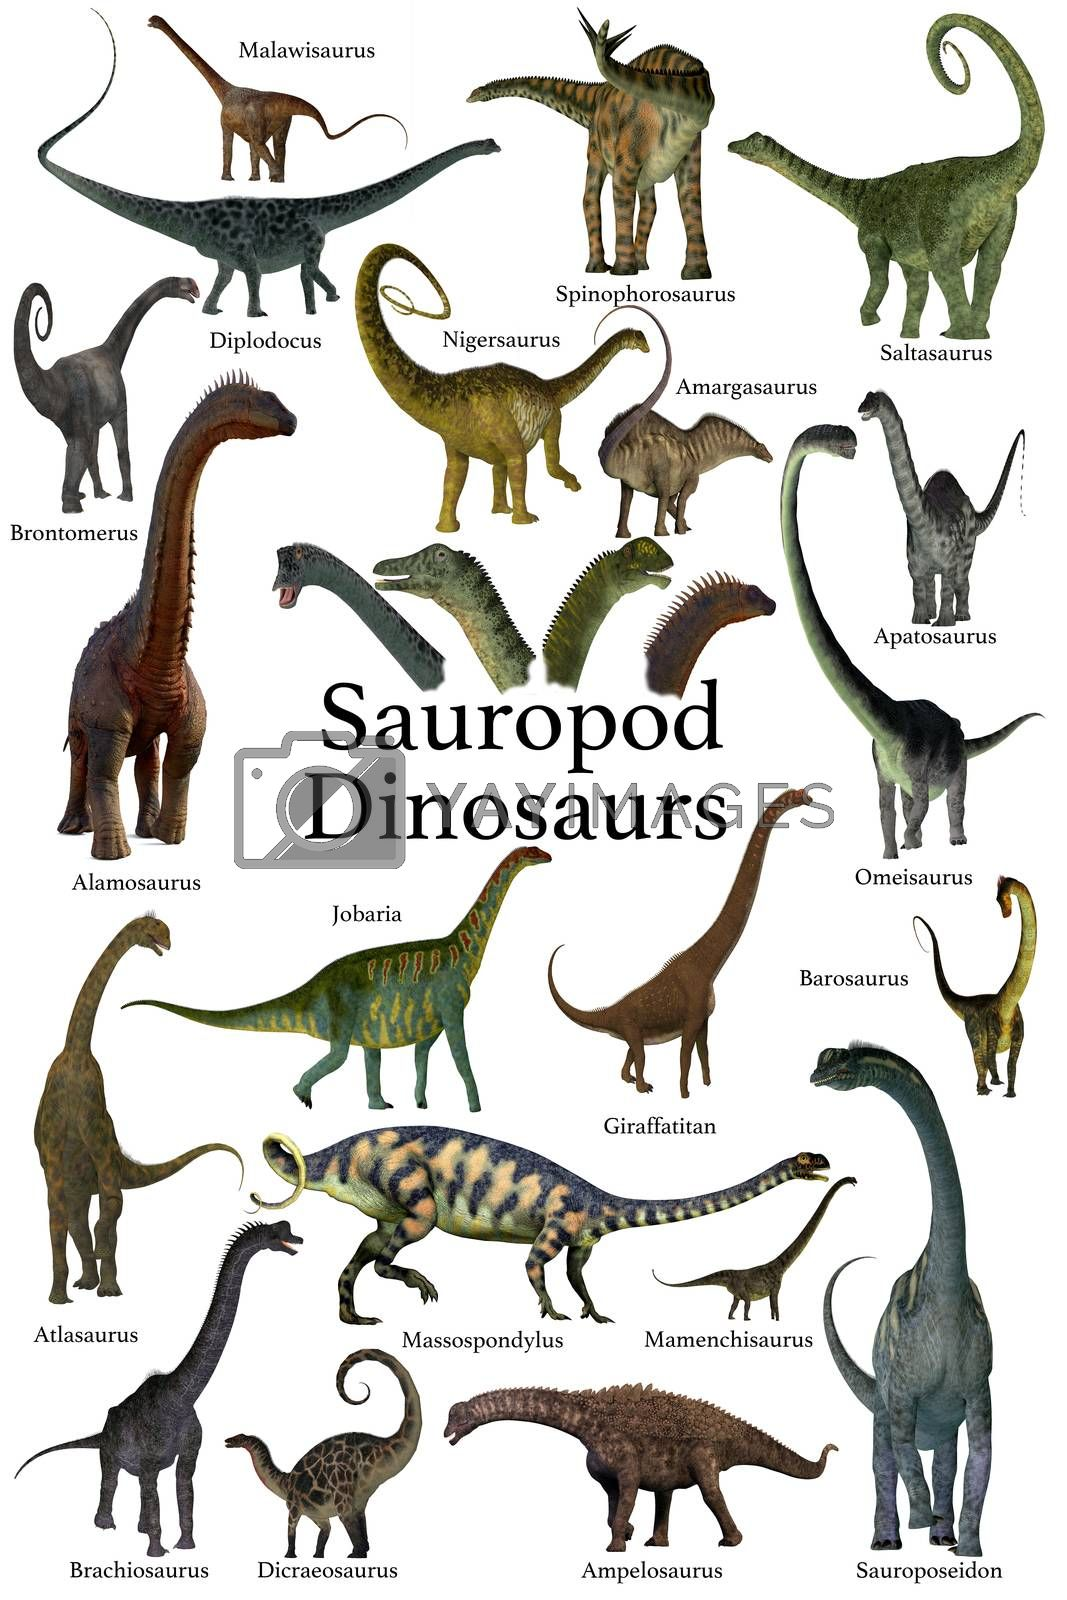 This is a collection of herbivorous sauropod dinosaurs who have long necks and tails with small heads.